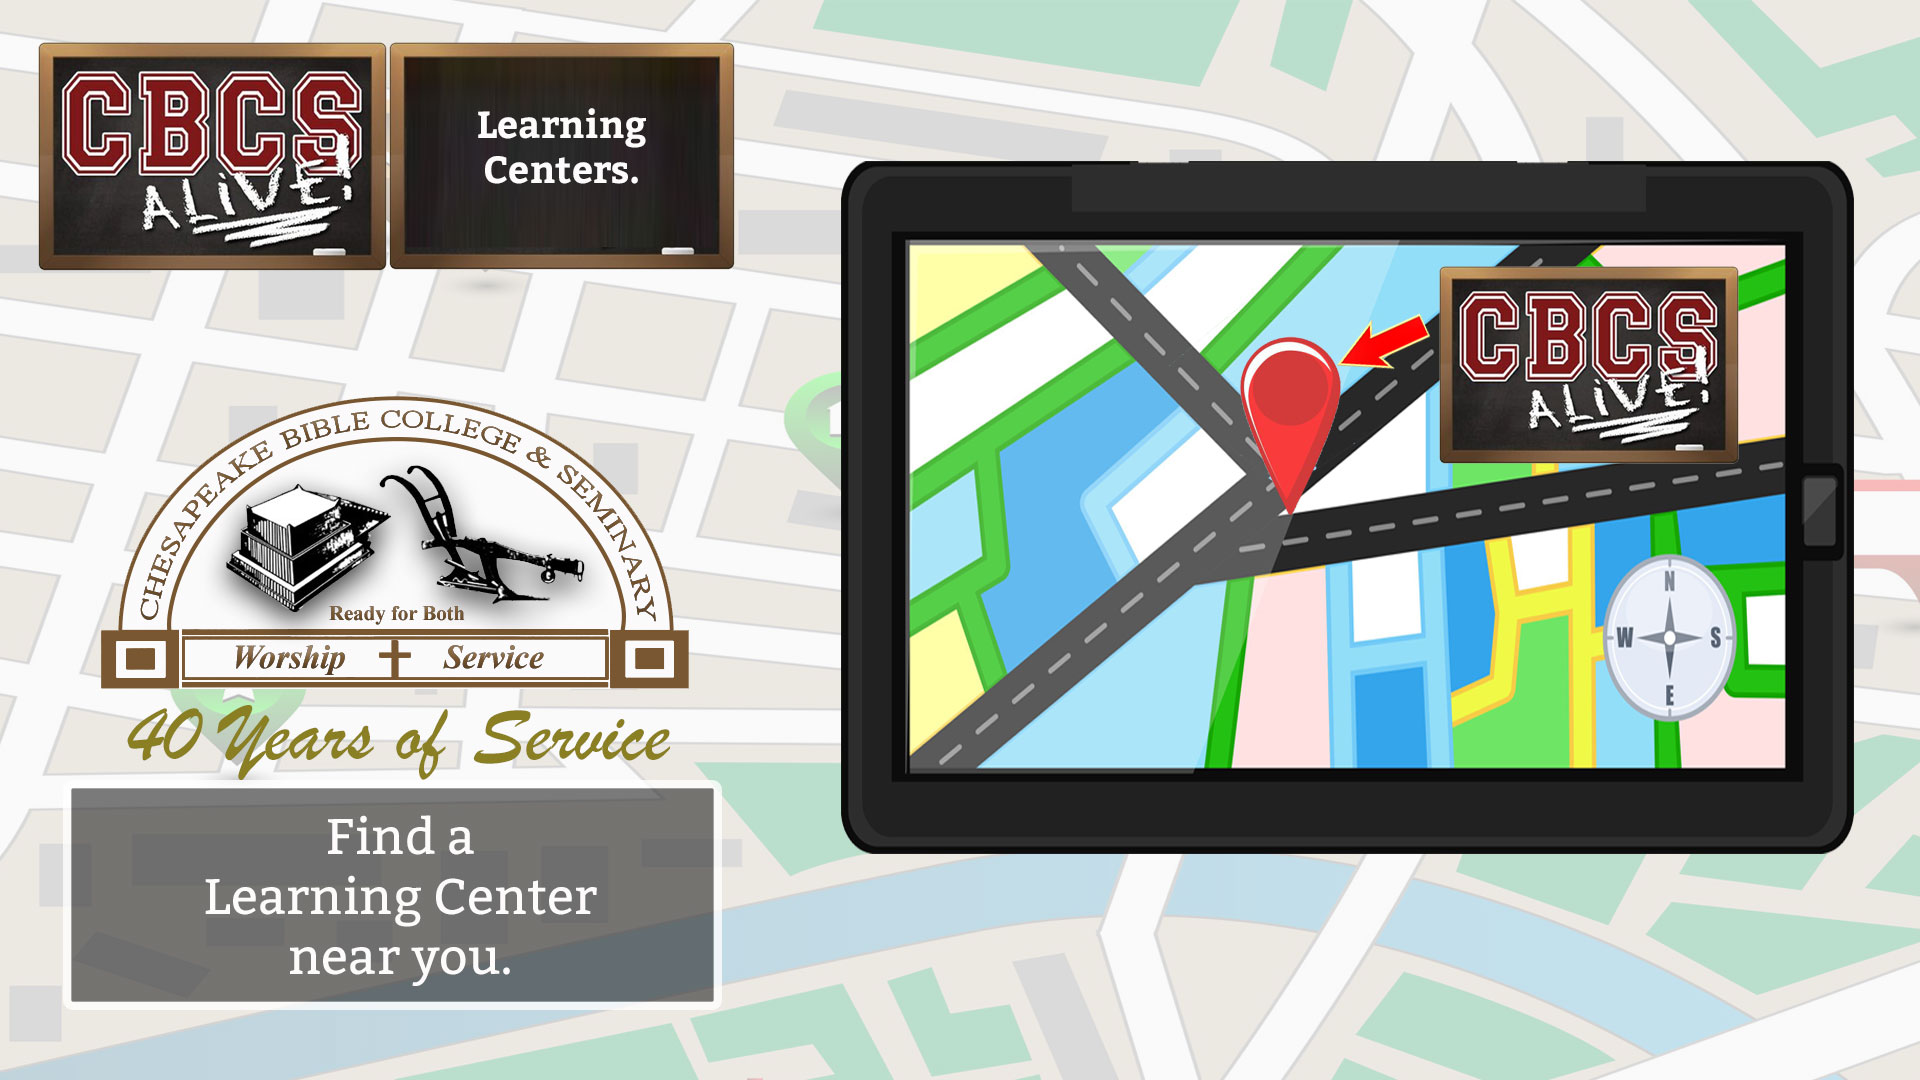 Chesapeake Bible College & Seminary Distance Learning Centers